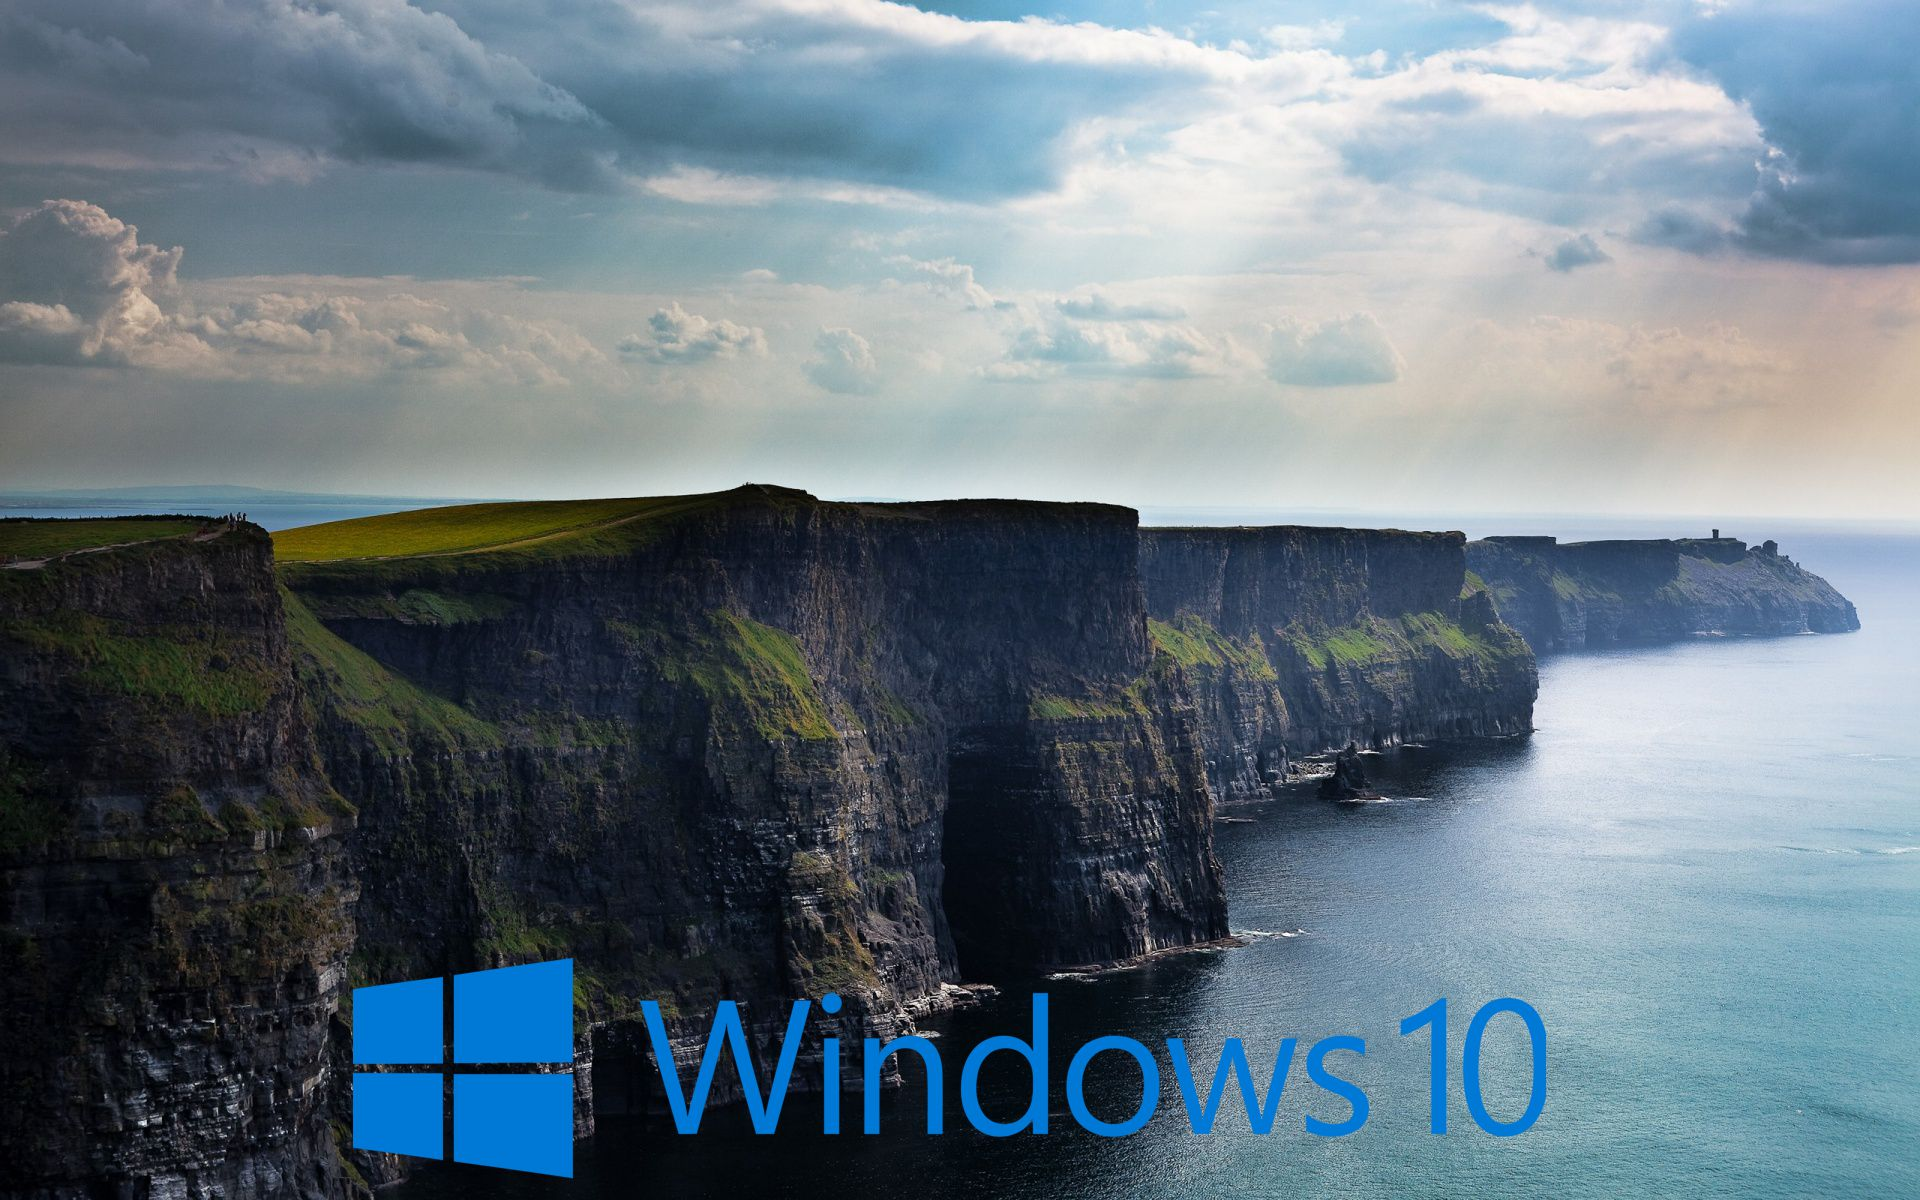 Windows 10 Nature HD Wallpaper 9To5Animations 1920x1200